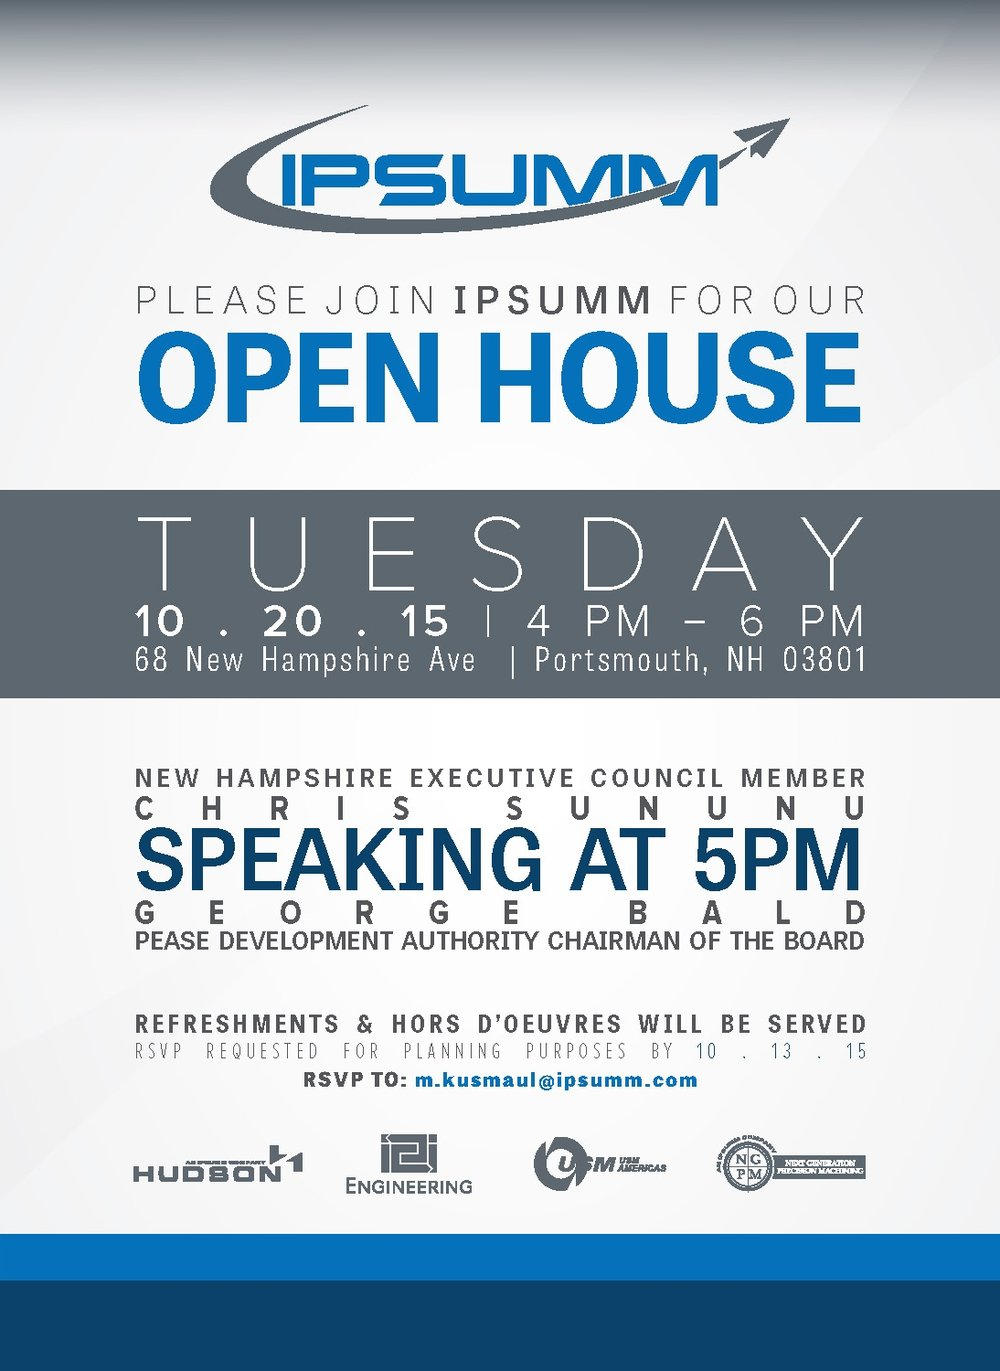 IPSUMM Open House Invitation